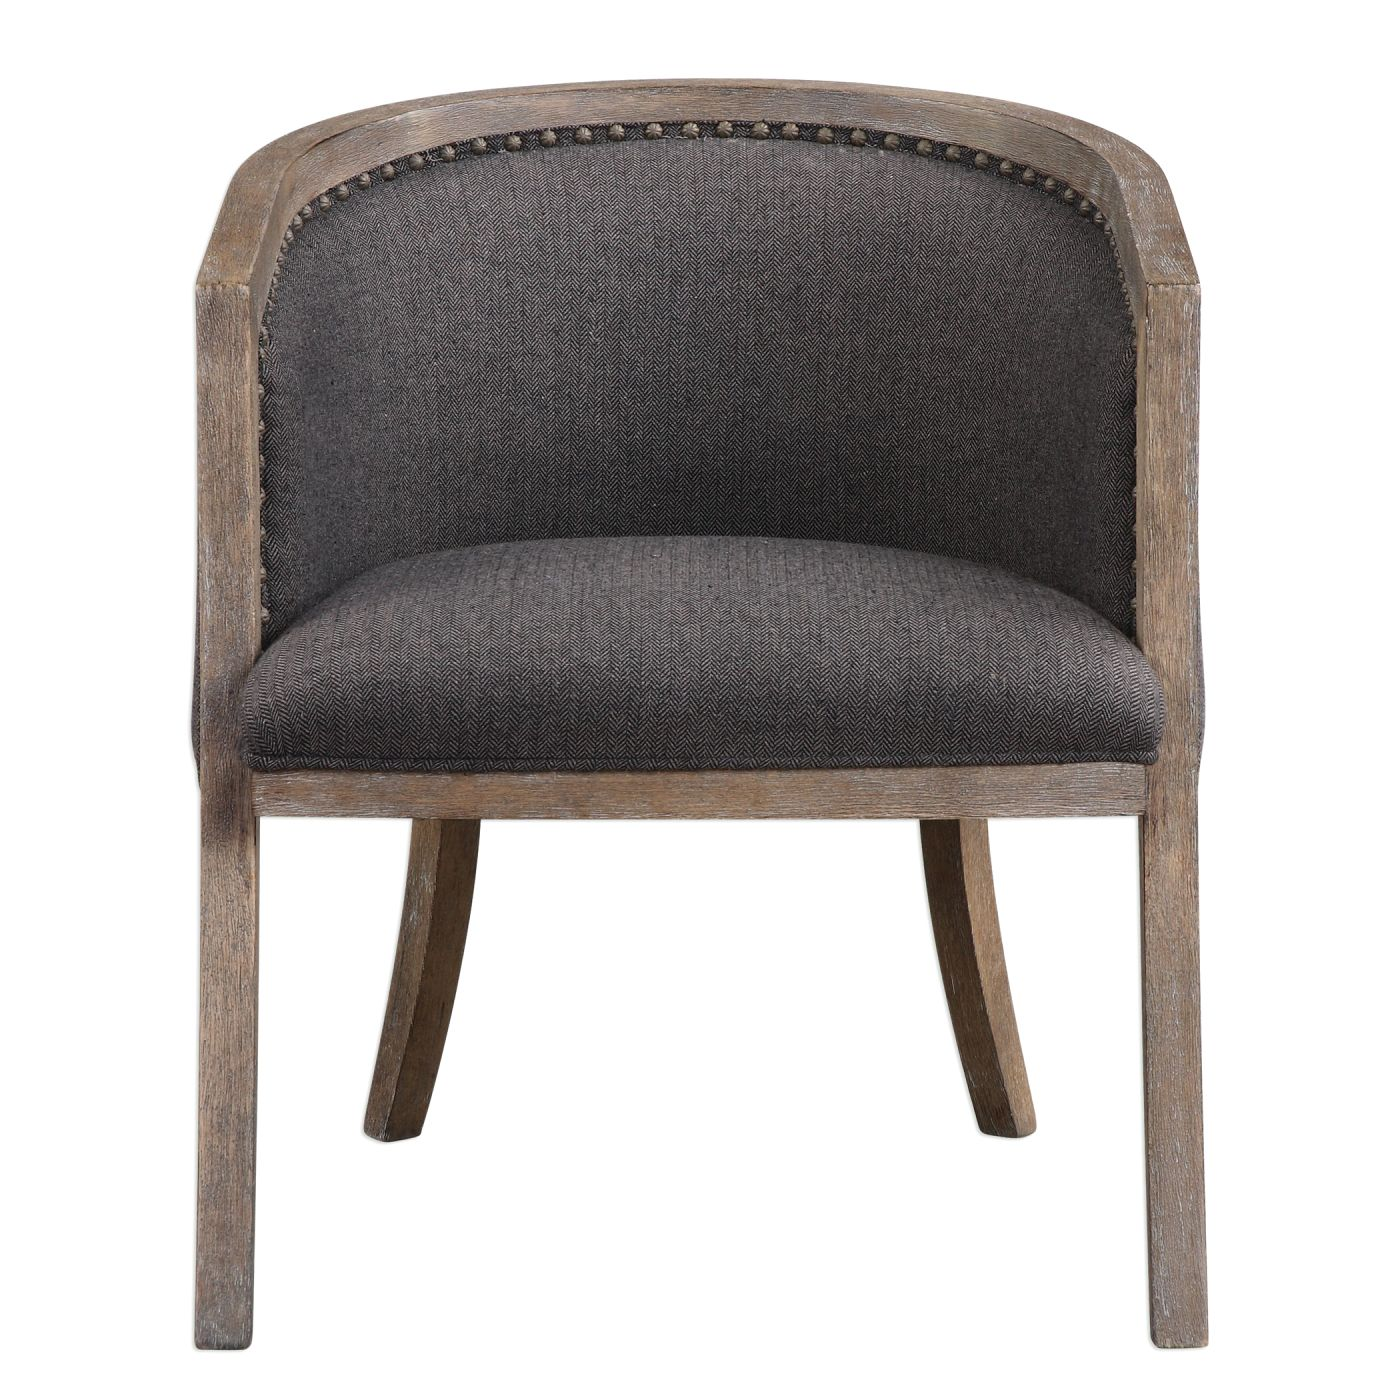 barrel chairs with casters at contemporary furniture warehouse accentchairs armchairs. barrel chairs with casters at contemporary furniture warehouse